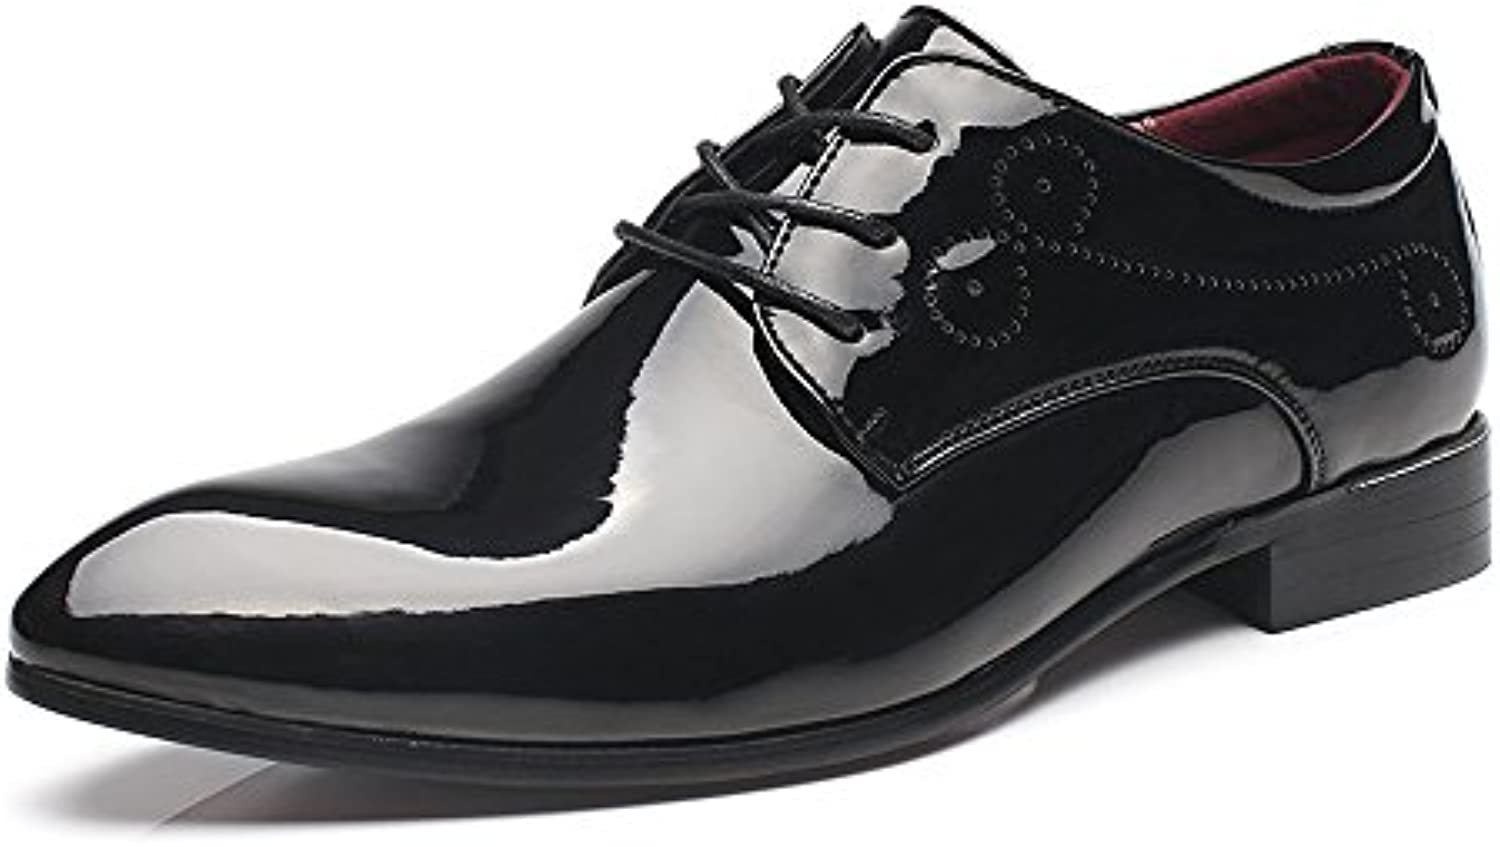 XHD-Scarpe Moda Uomo Brunito Smooth Cuoio Scarpe Scarpe Scarpe Classic Lace Up Business Oxfords Tuxedo | elegante